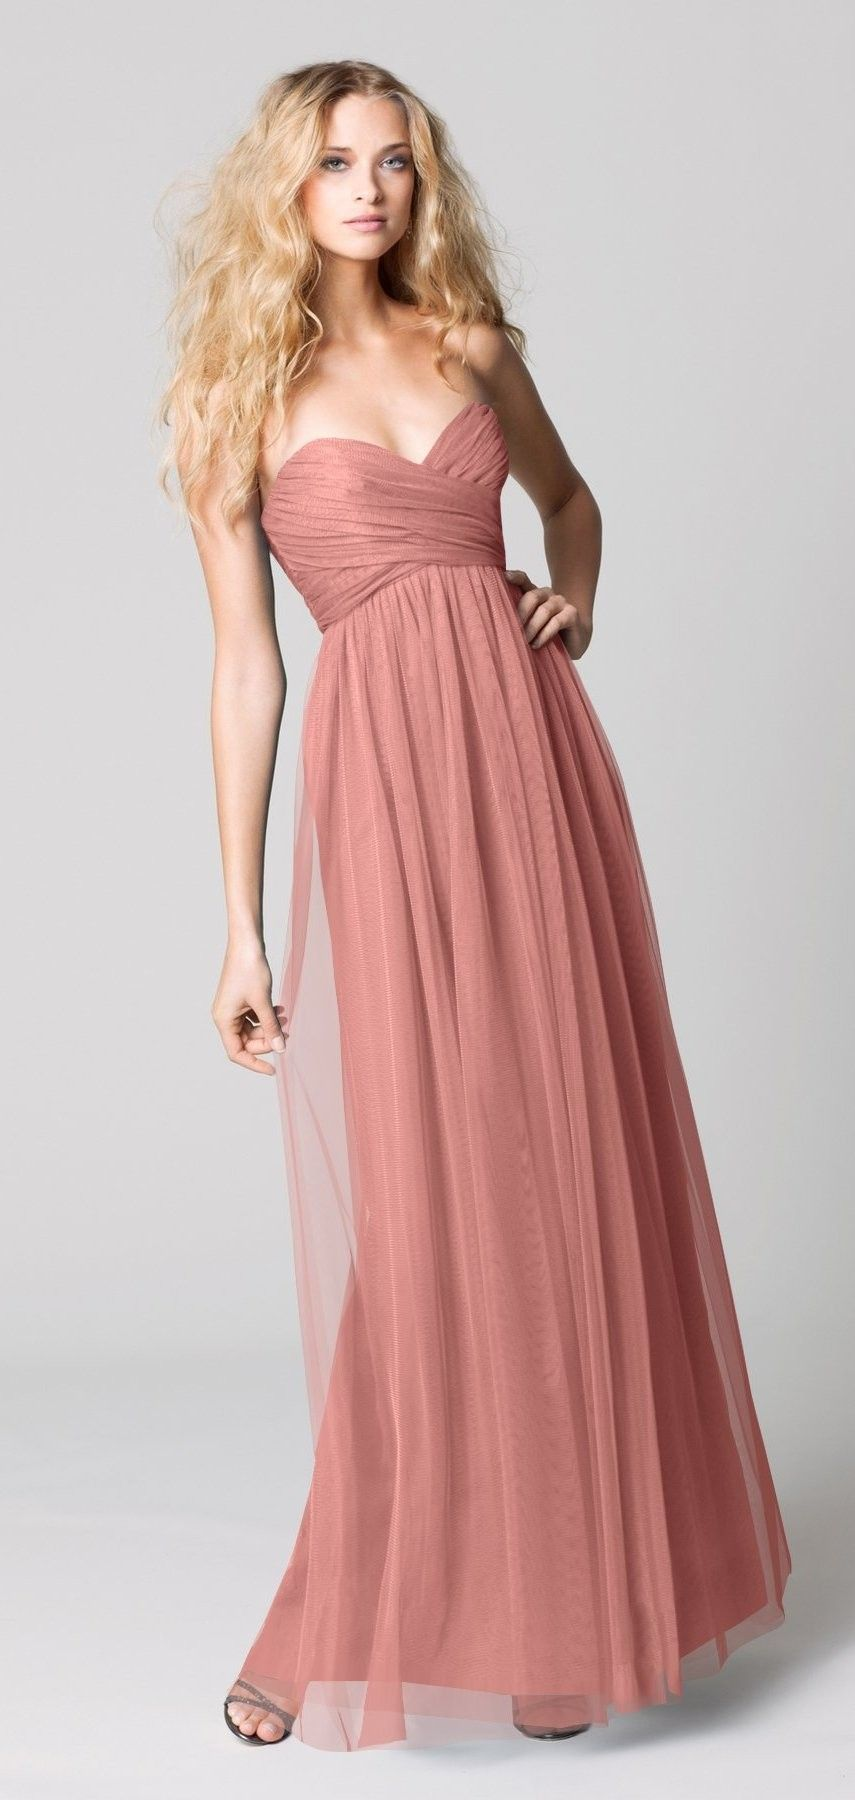 96- coral | Evening Wear | Pinterest | Matrimonio, Marcos y Boda